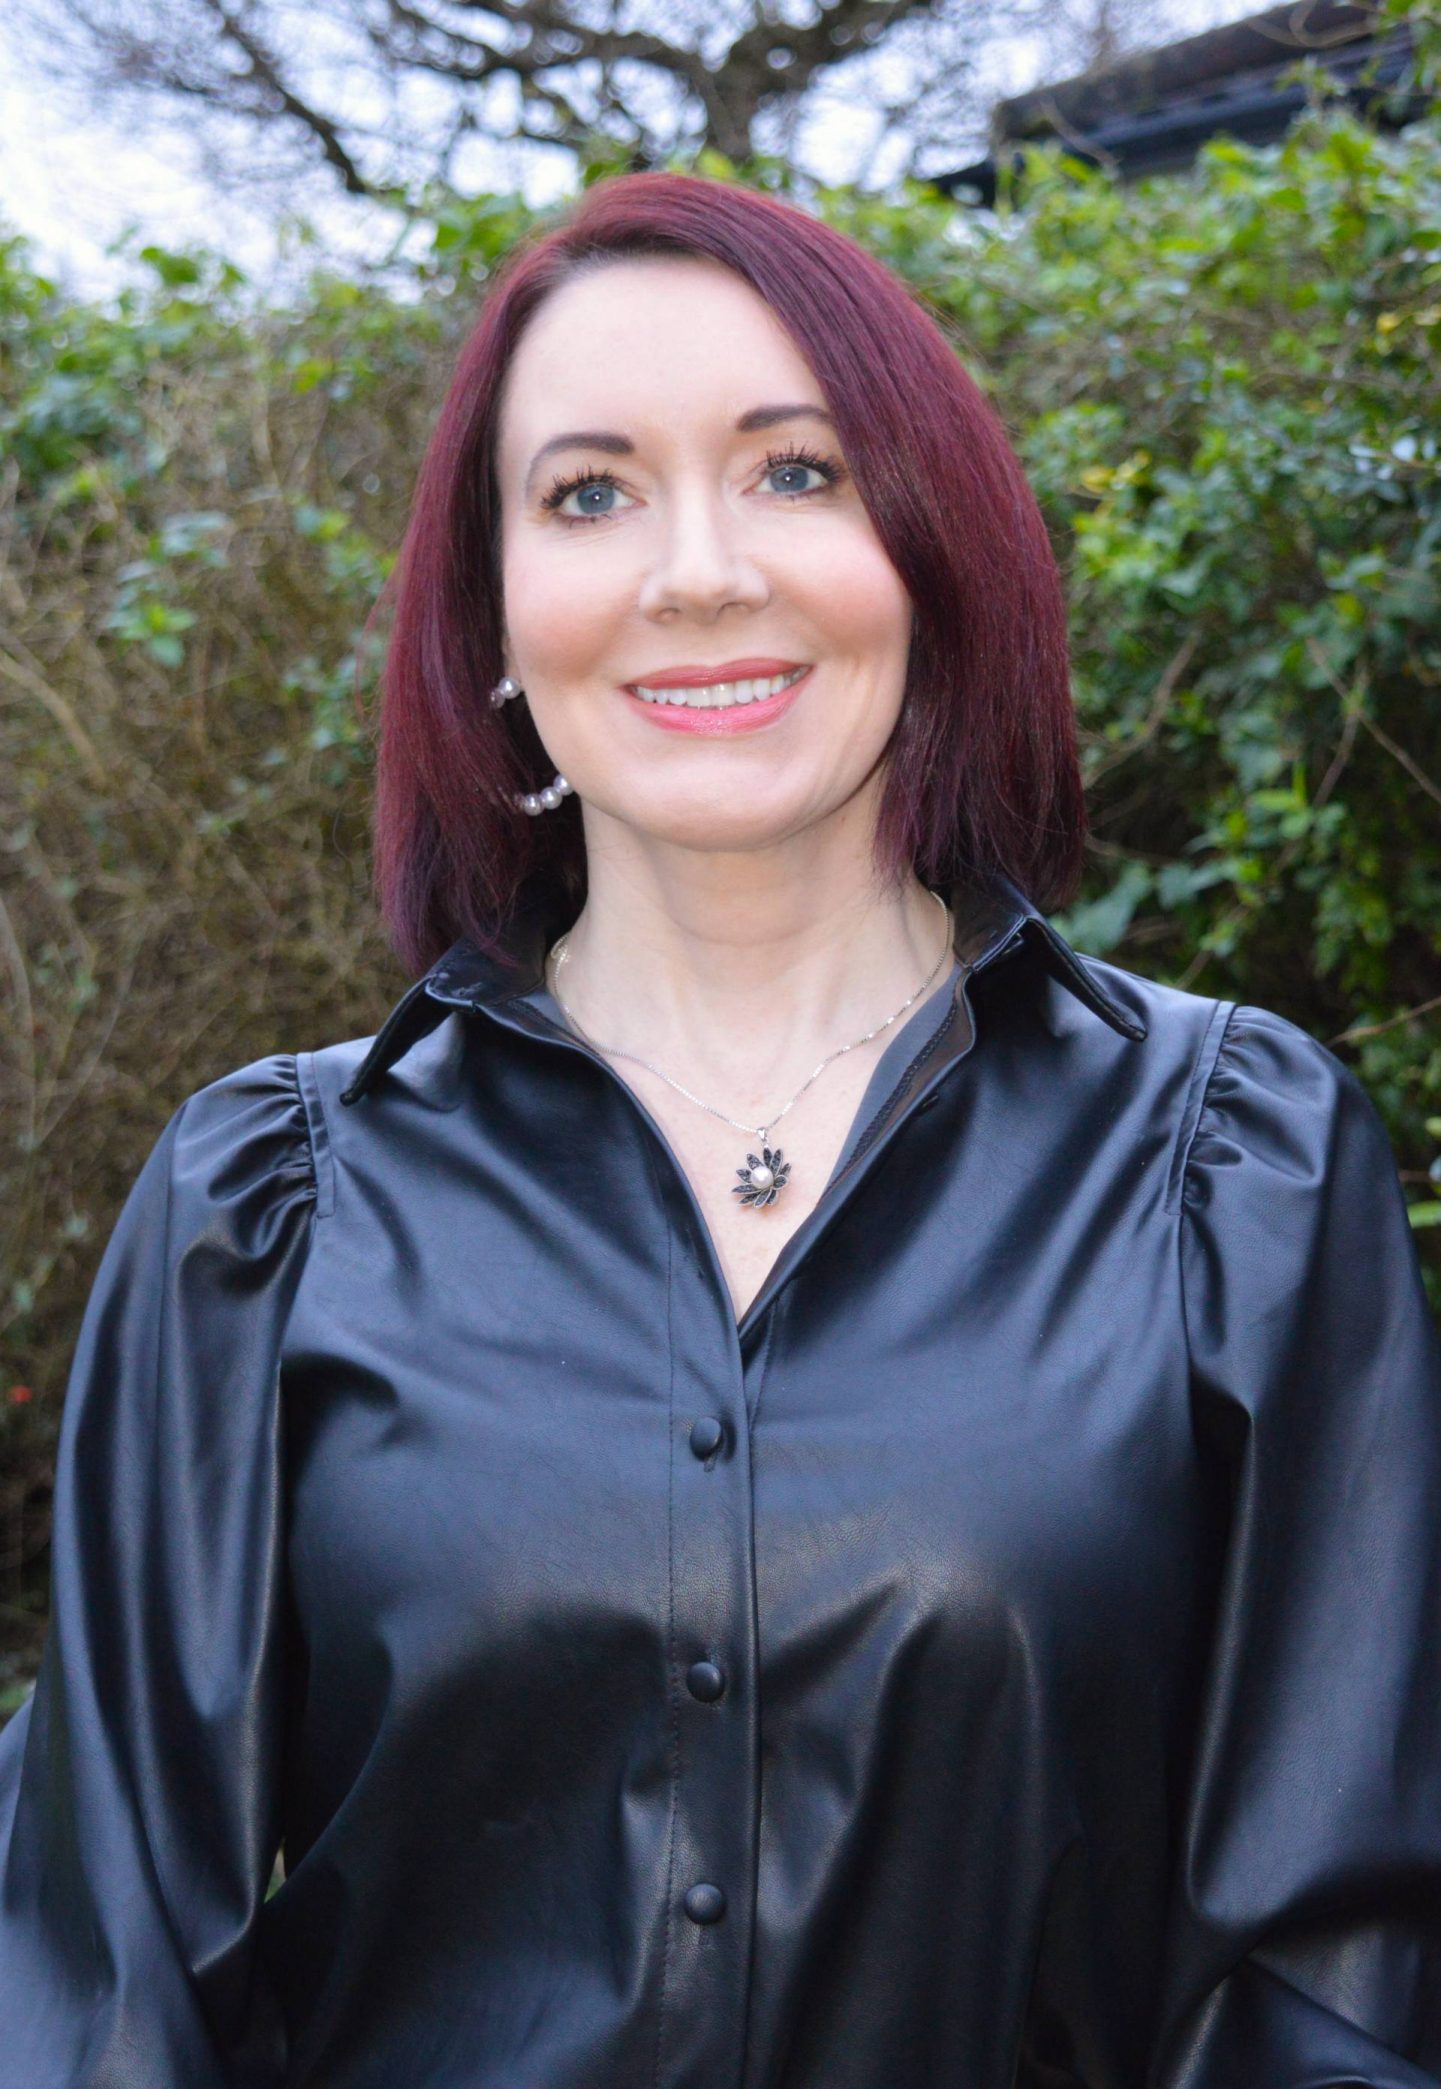 Styling Leather and Pleather - January's Thrifty Six Collaboration, New Look faux leather shirt